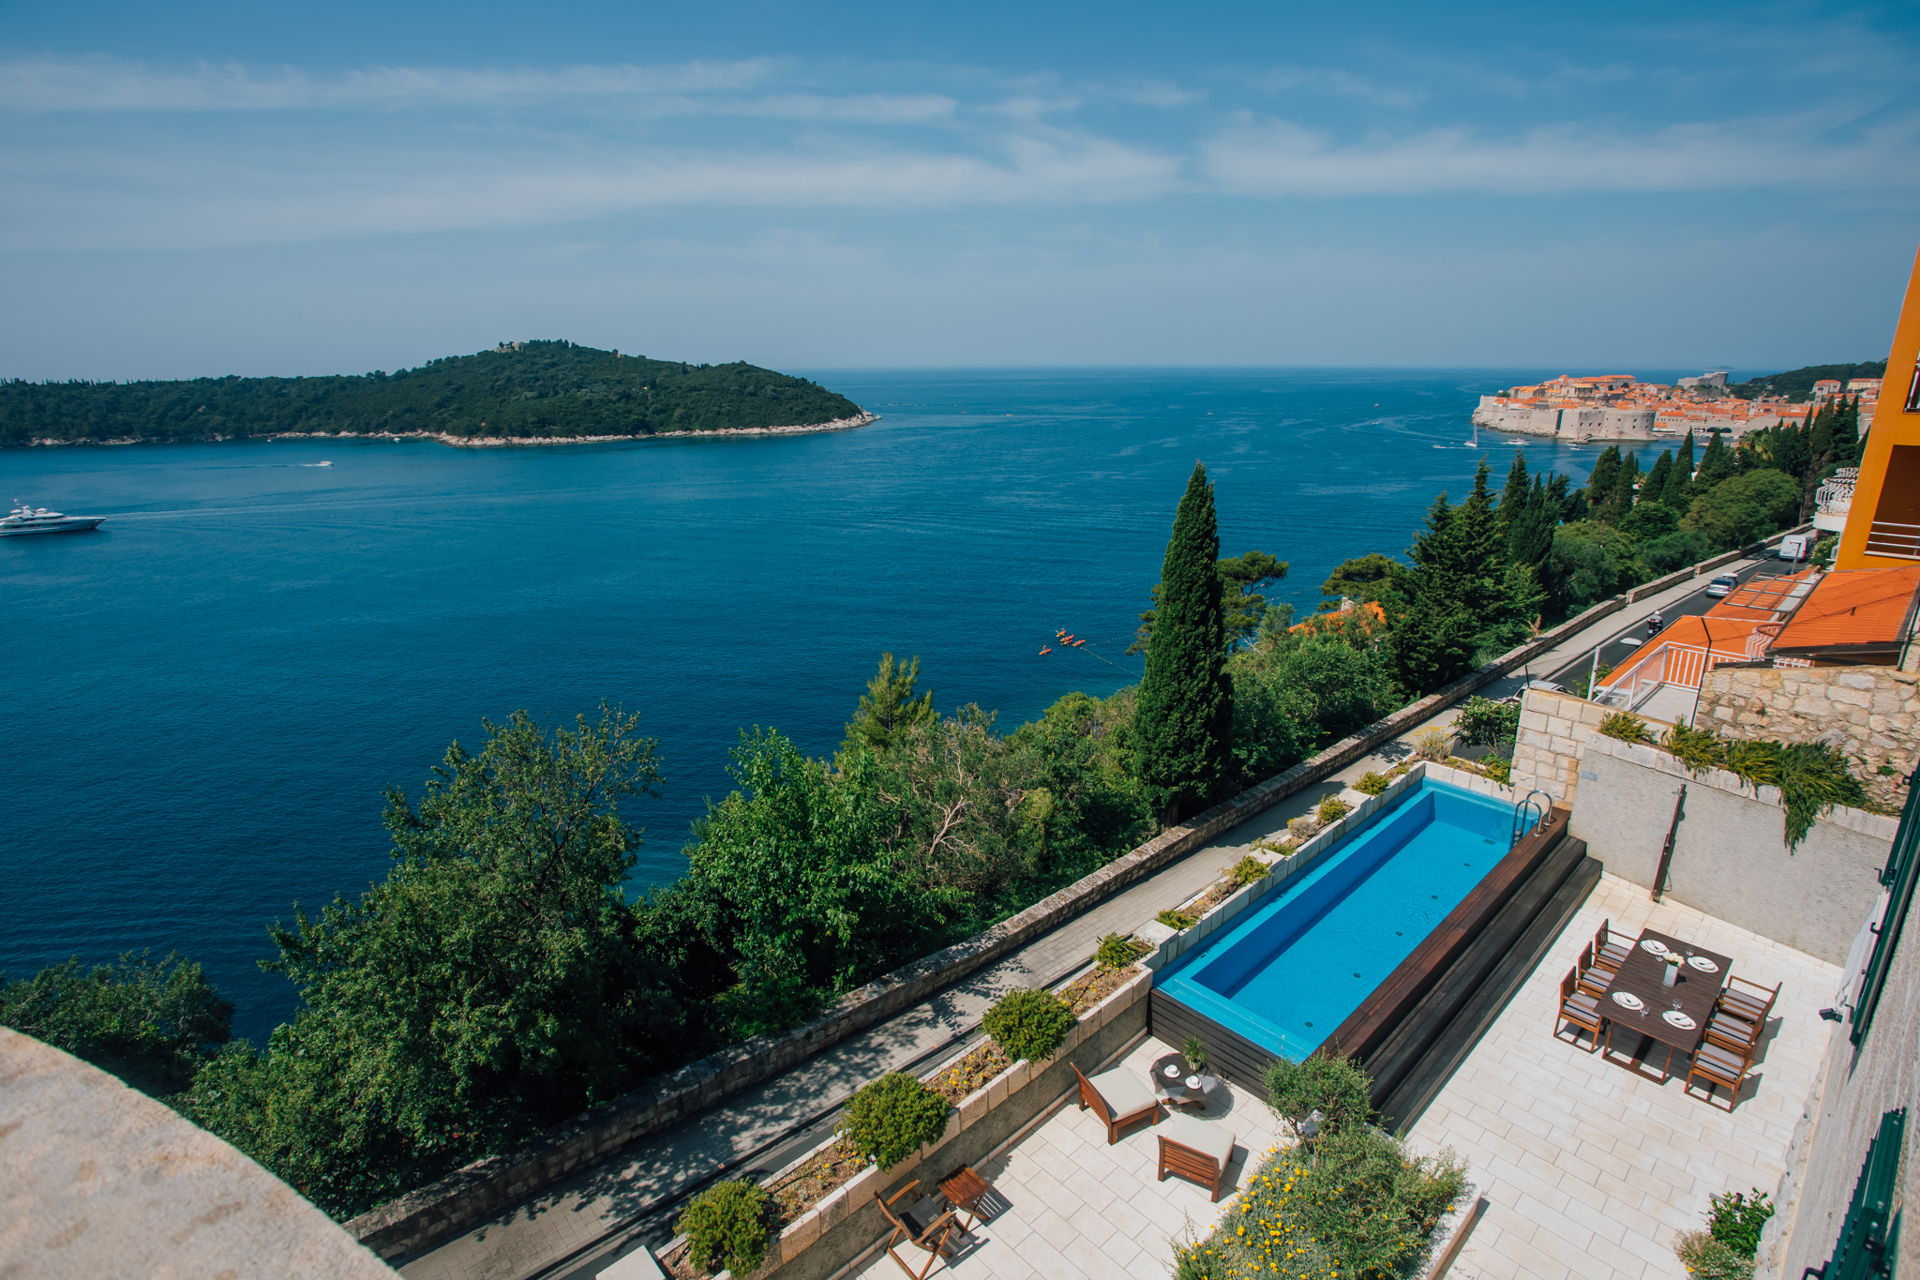 View of Dubrovnik Old Town and Lokrum Island from Luxury Residence Queen of Dubrovnik